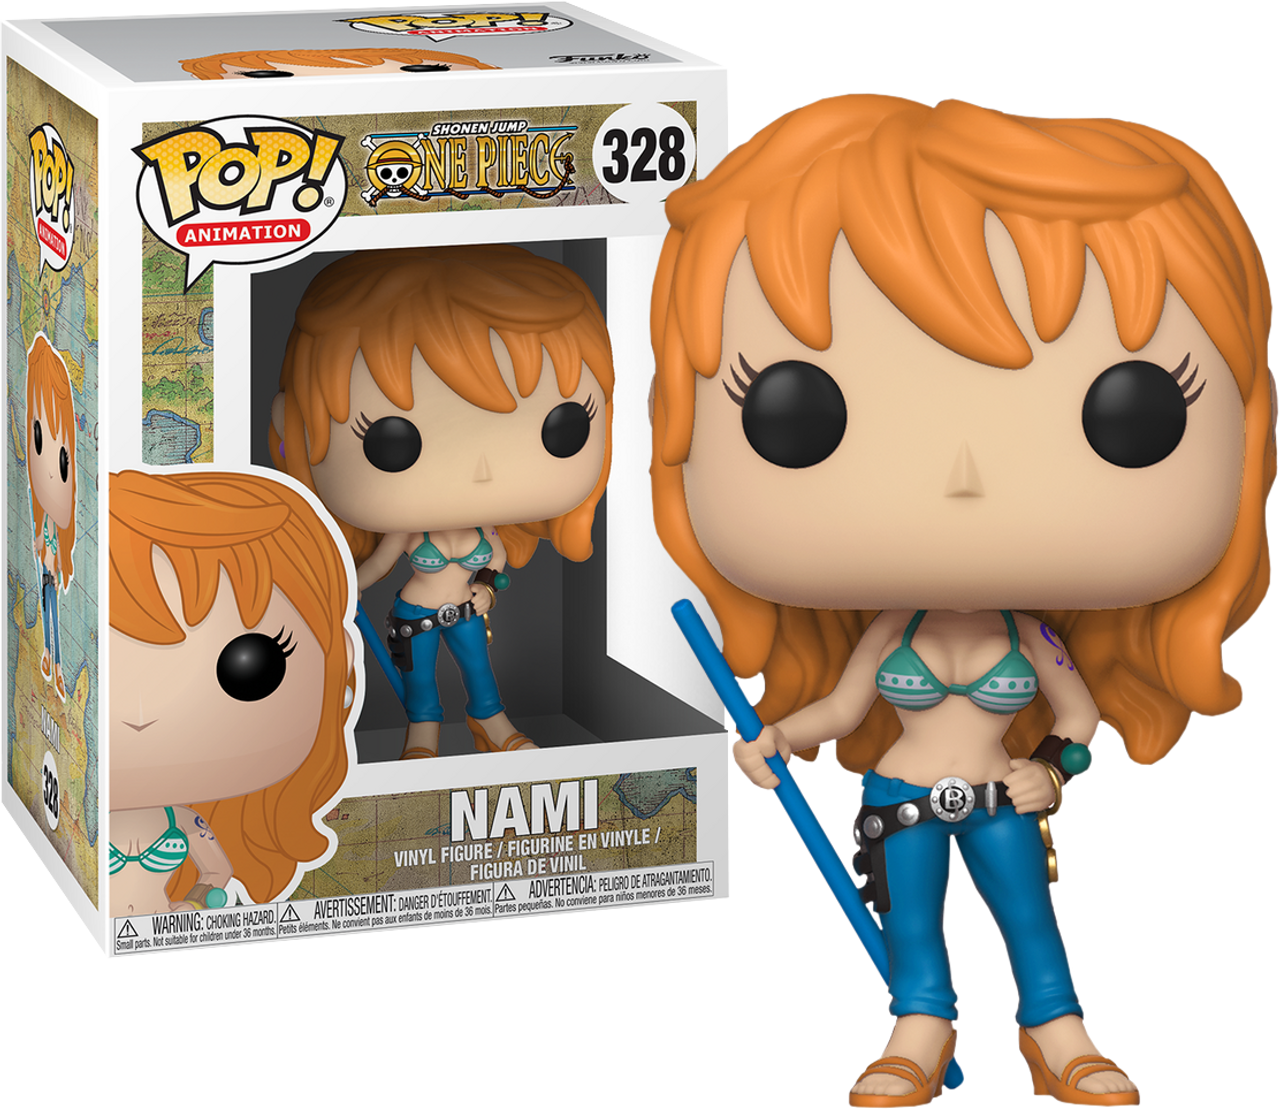 One Piece Nami Pop Vinyl Figure